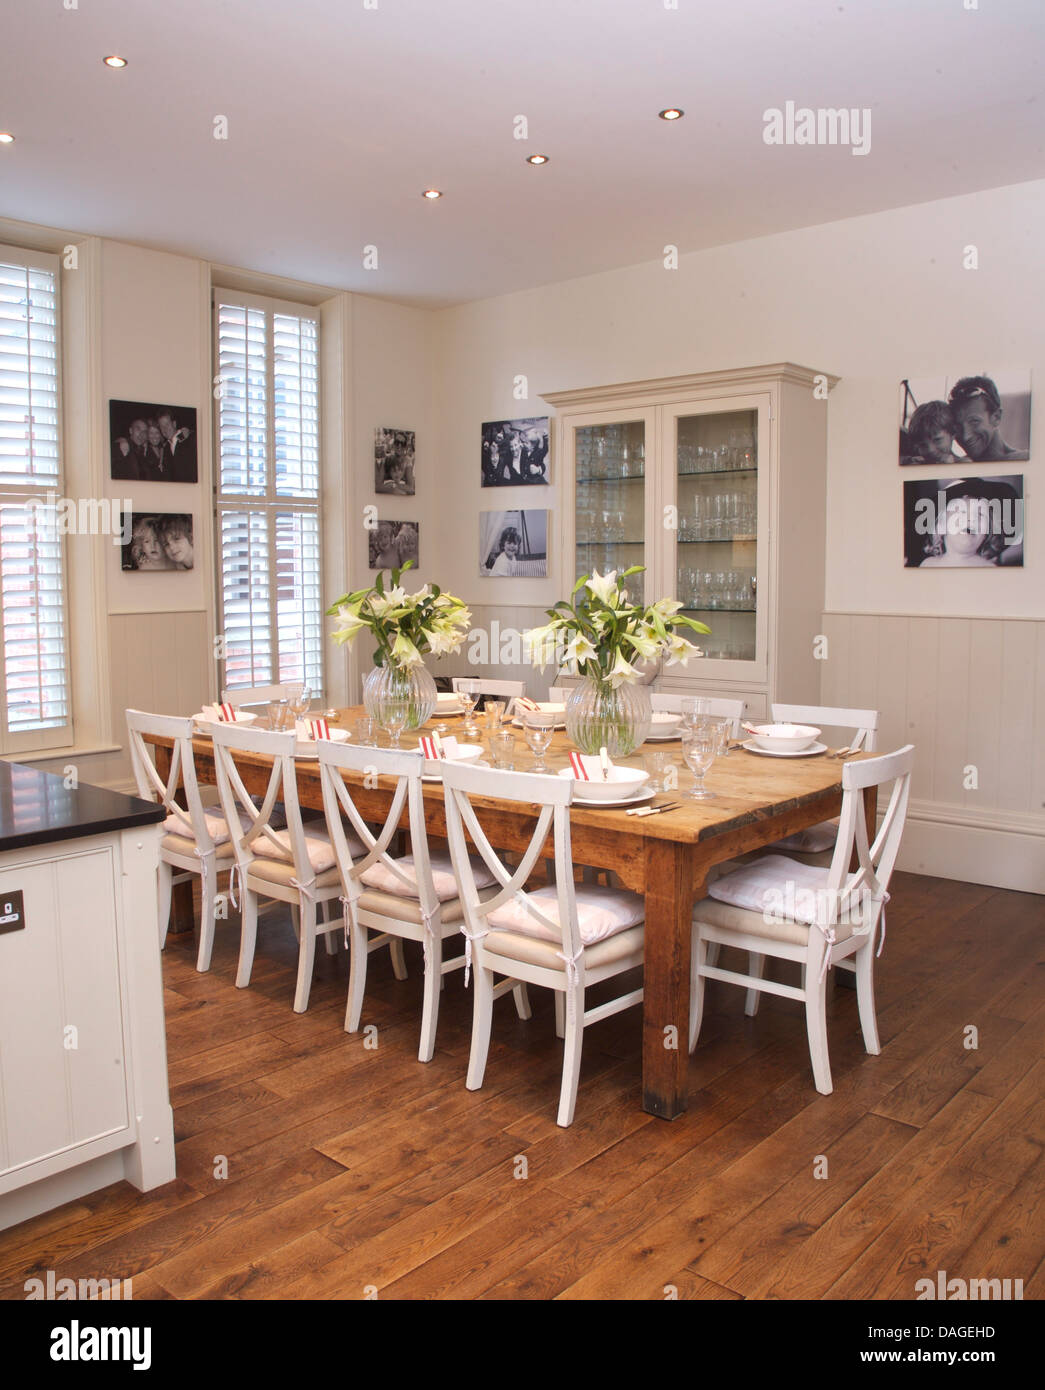 white chairs at simple wood table in modern white kitchen dining room DAGEHD